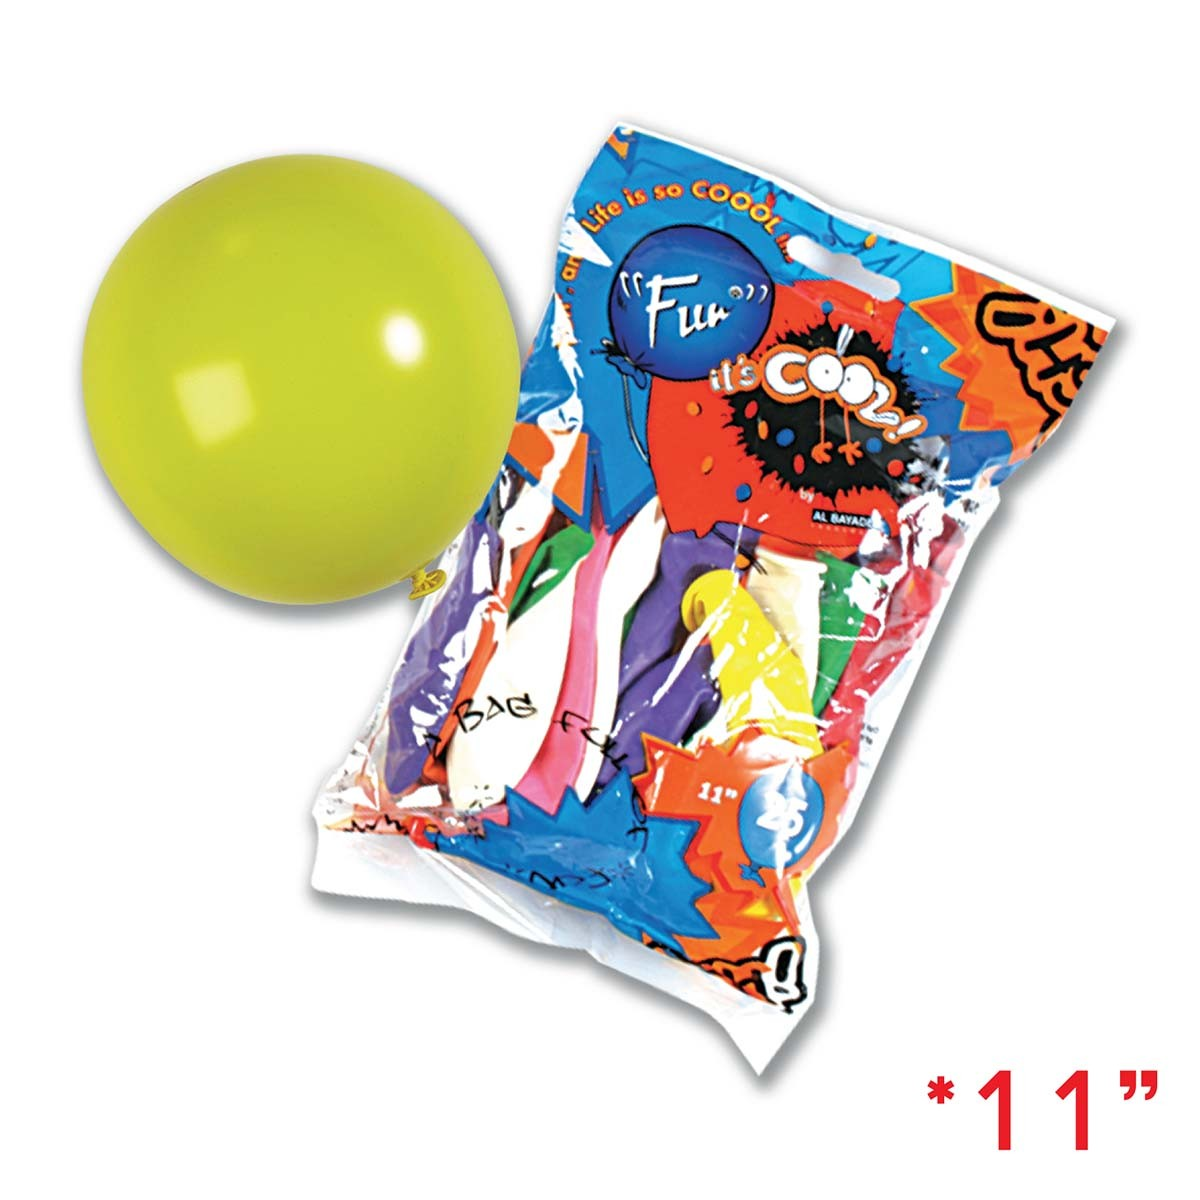 Fun® Balloons 11in Standard - Assorted Colours | 25pcsx25pkts